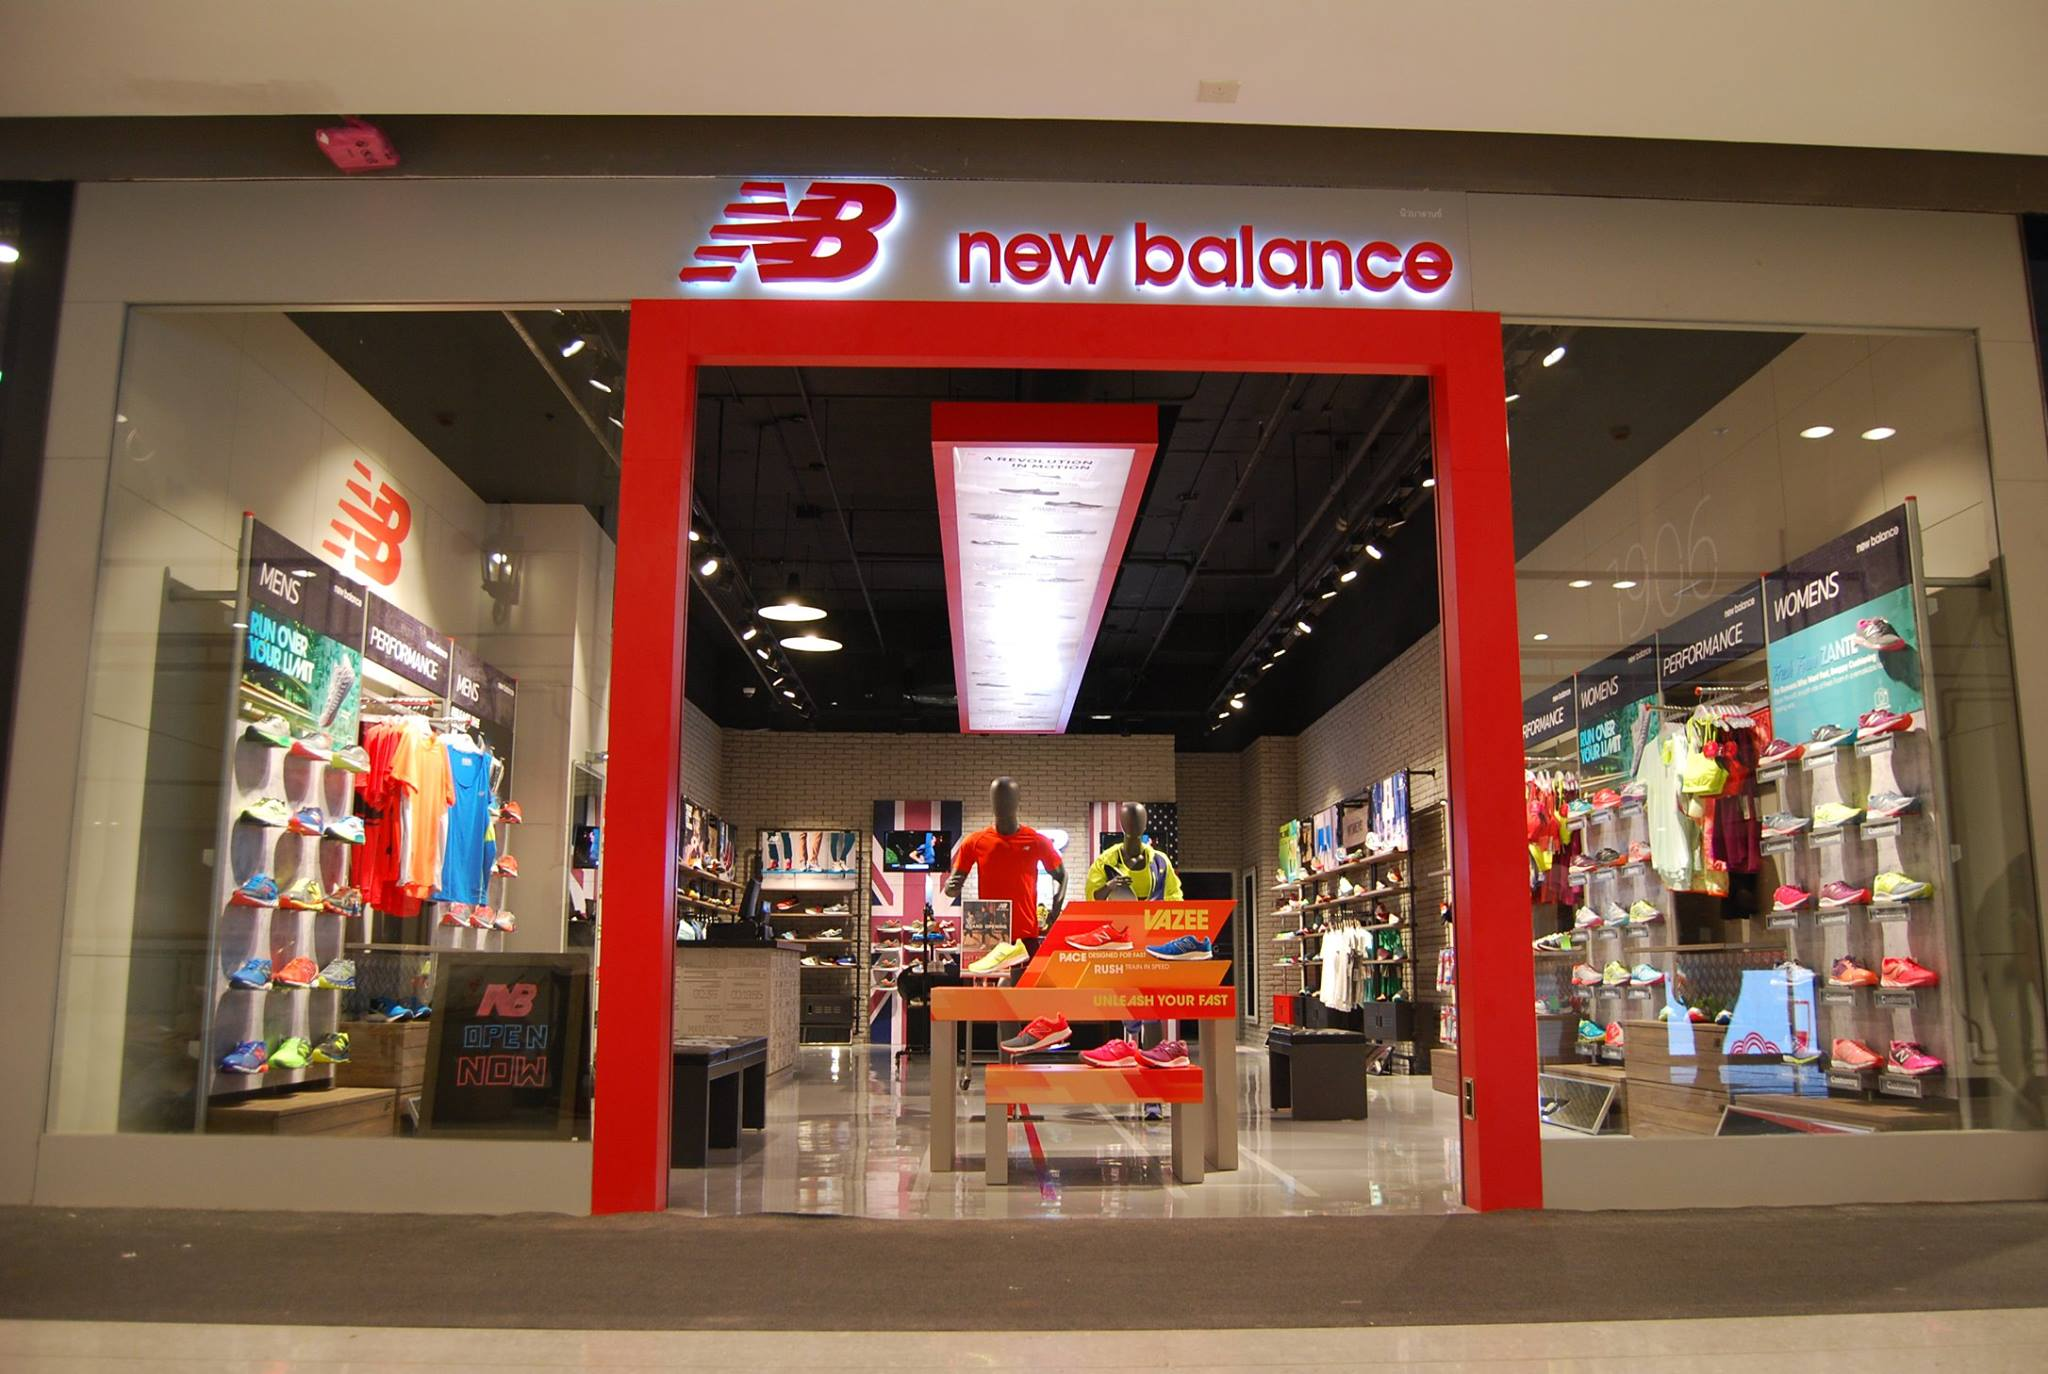 f51a6483bbd5d new balance outlet vila do conde